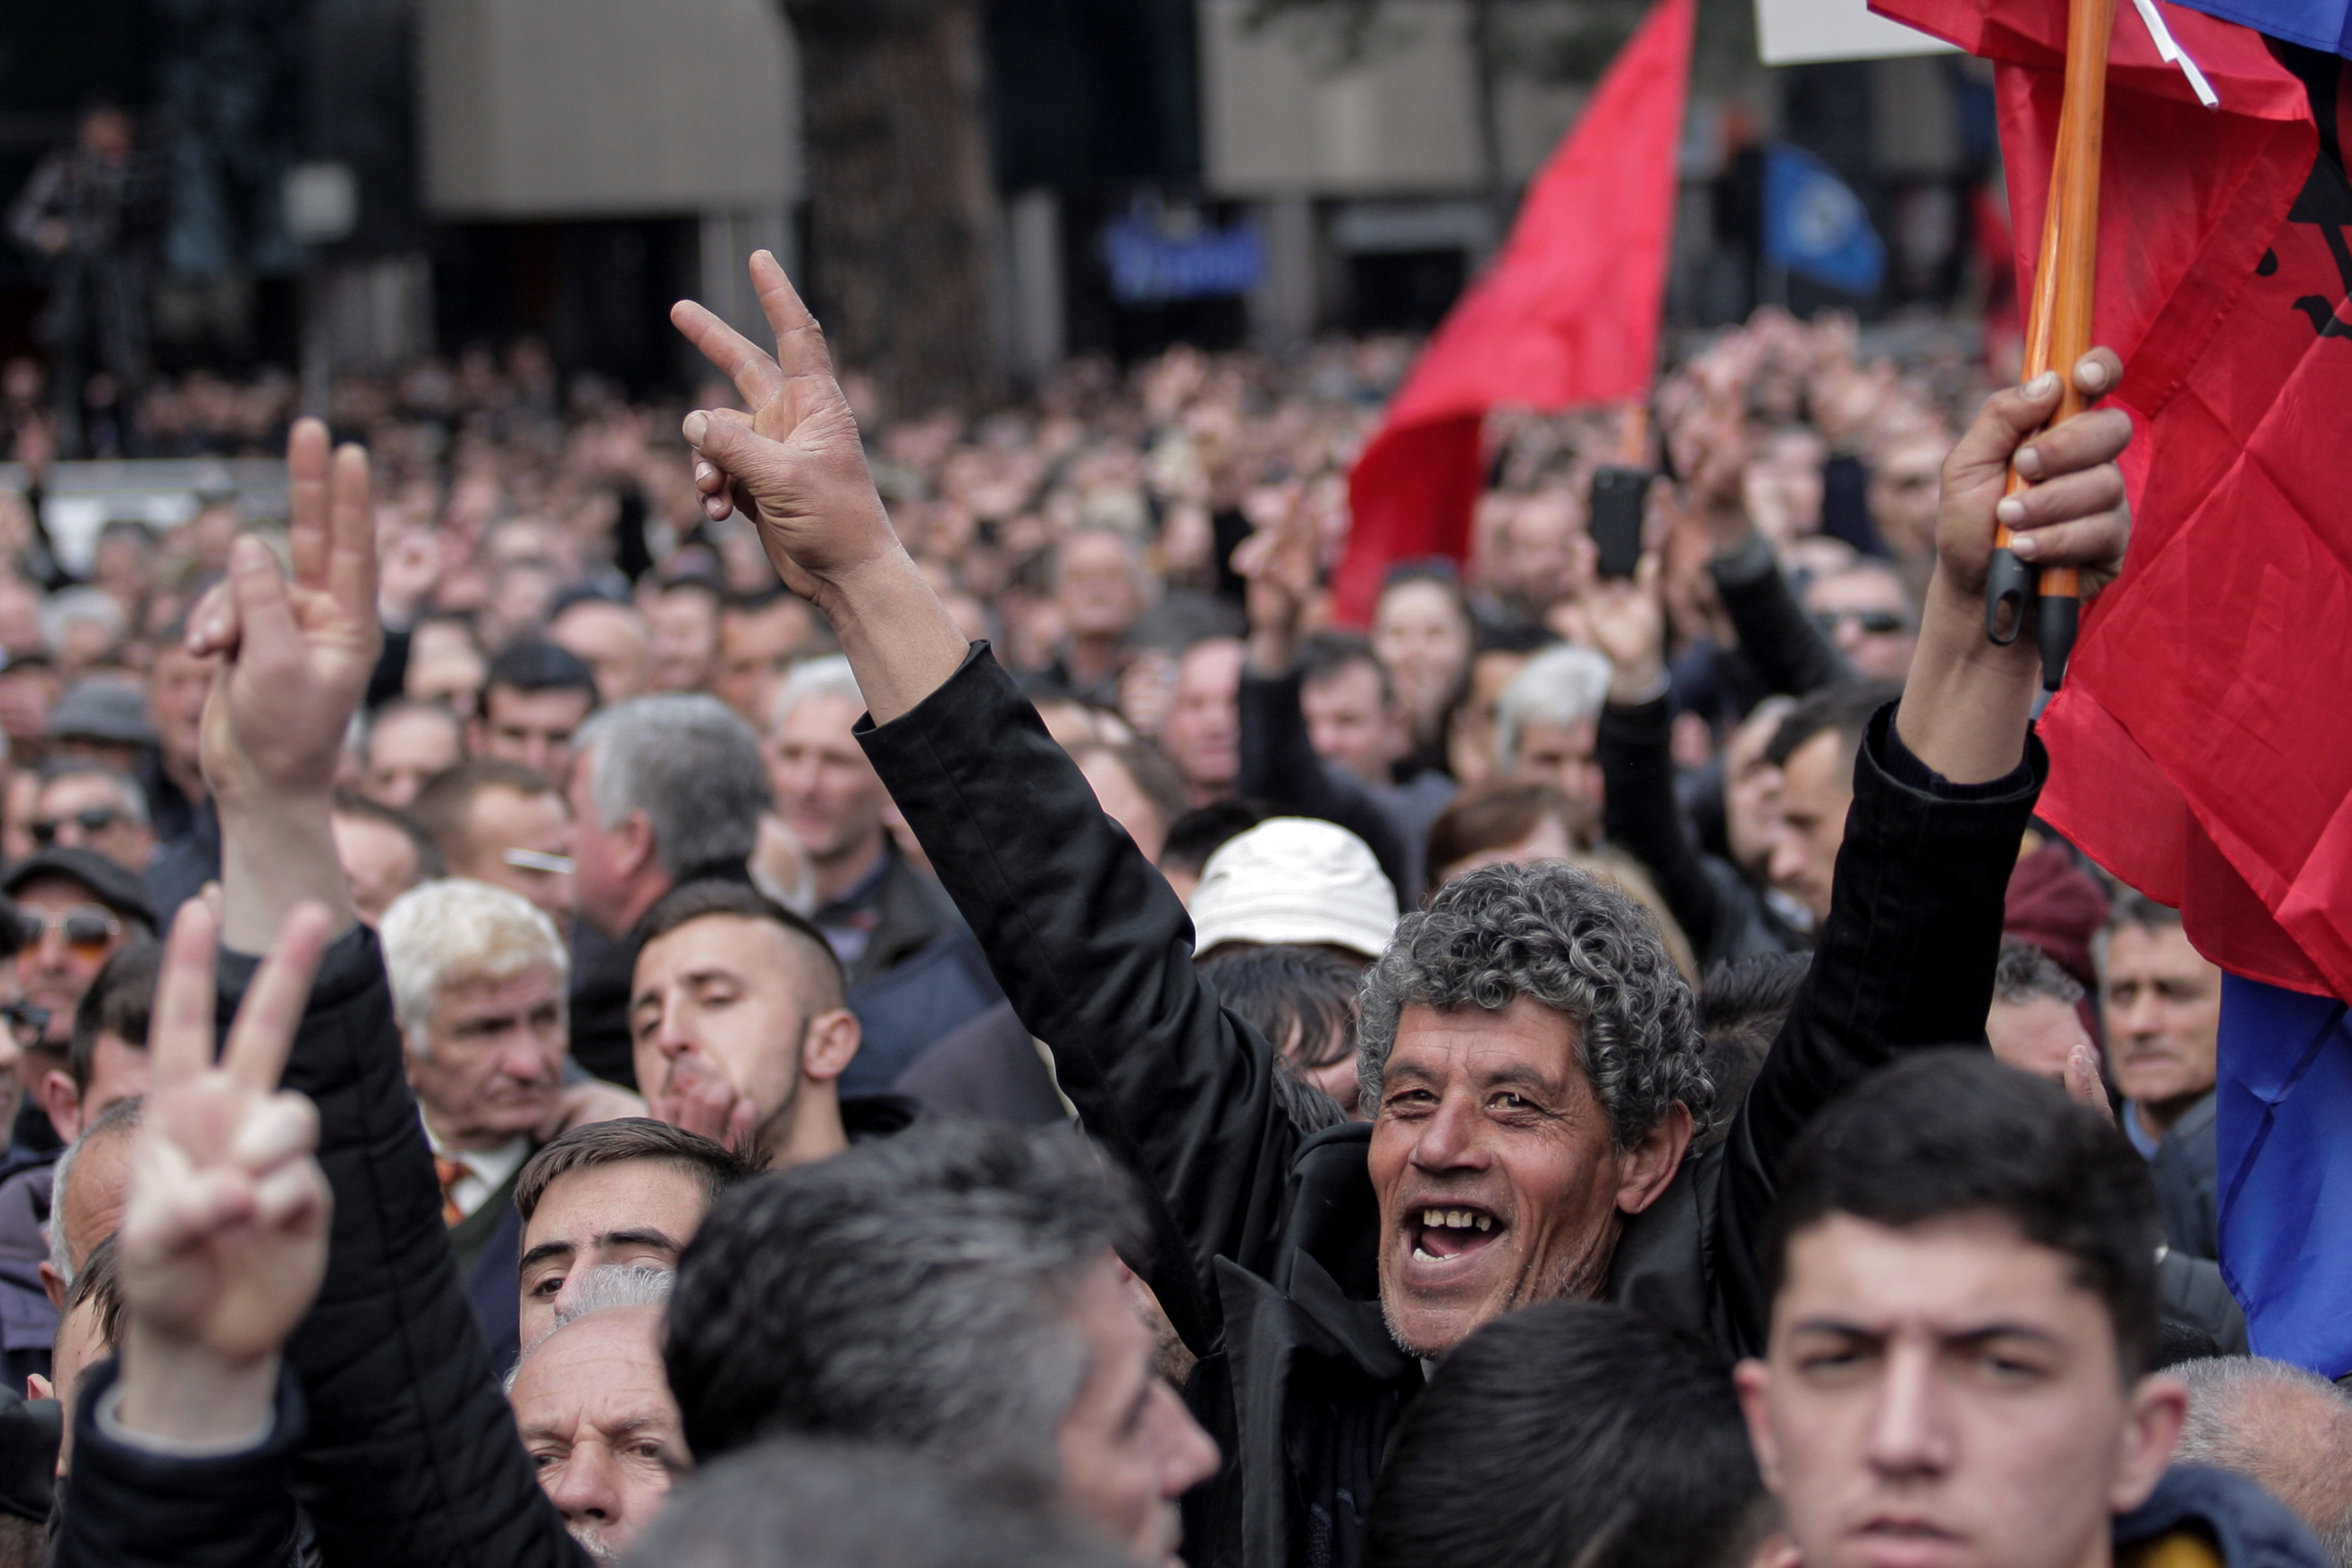 2017 02 18T153553Z 1302415741 RC1341114A30 RTRMADP 3 ALBANIA PROTEST